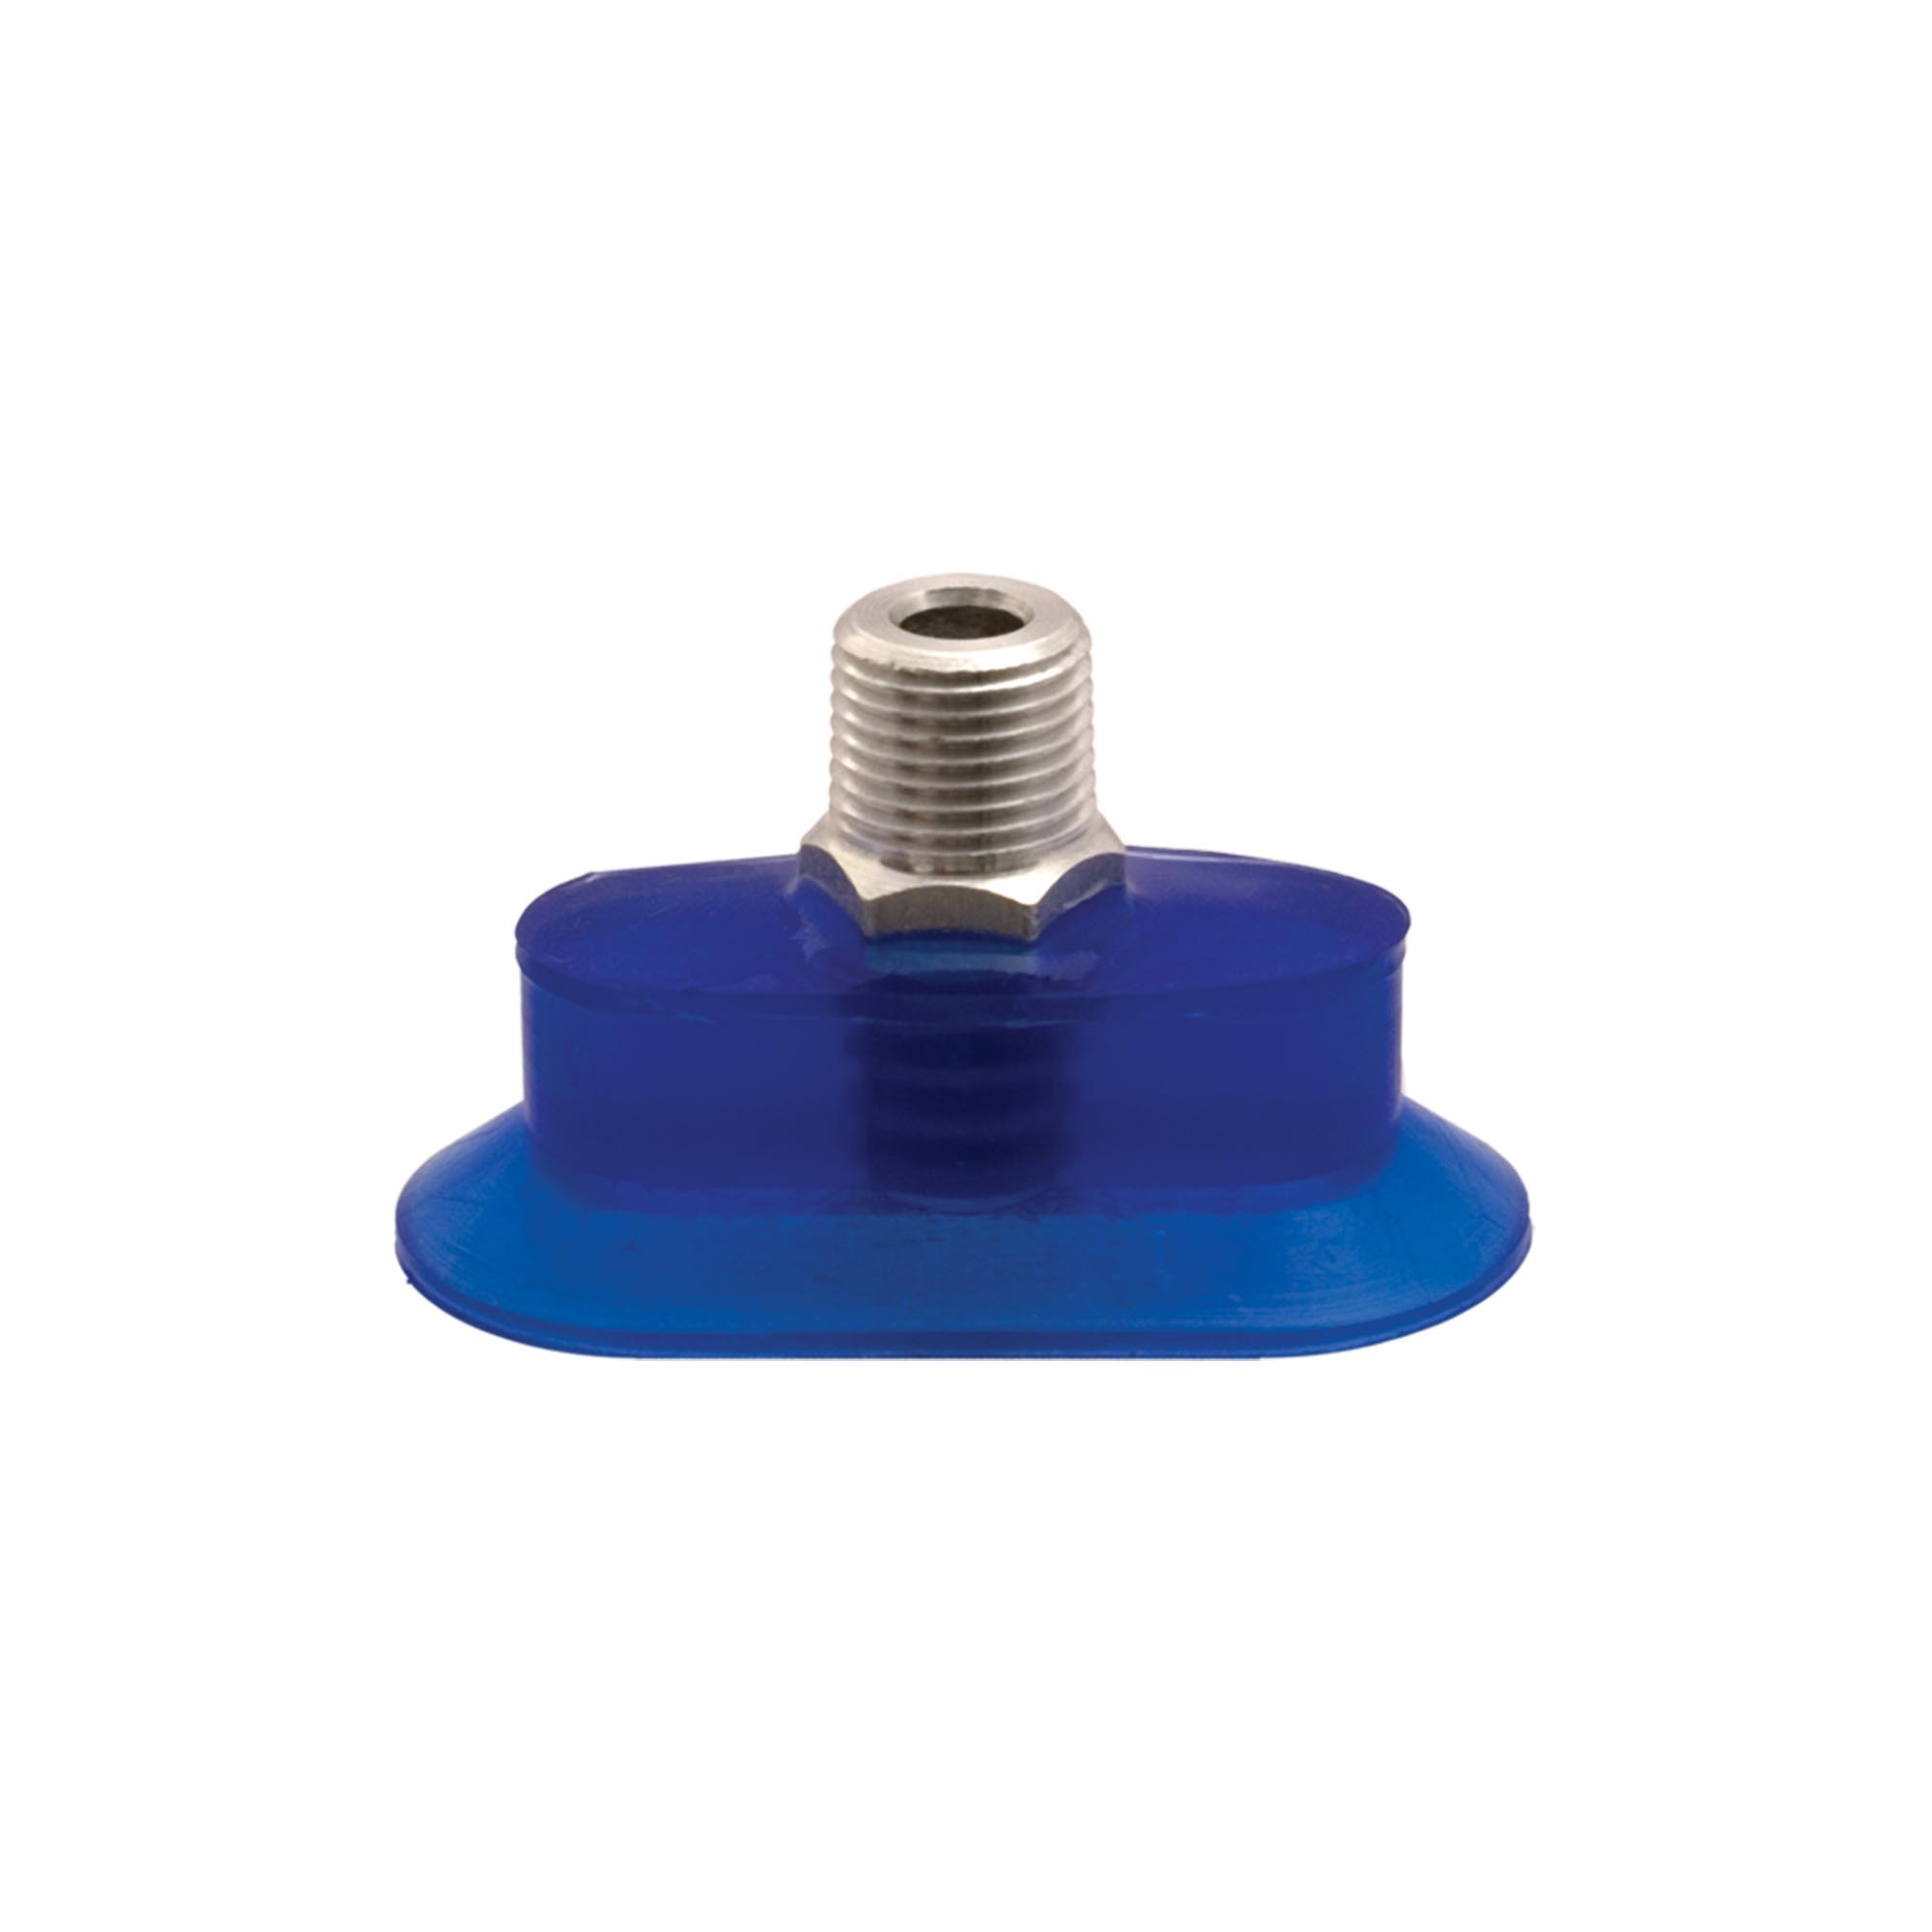 Oval vacuum cups have the largest surface area and provide the most vacuum